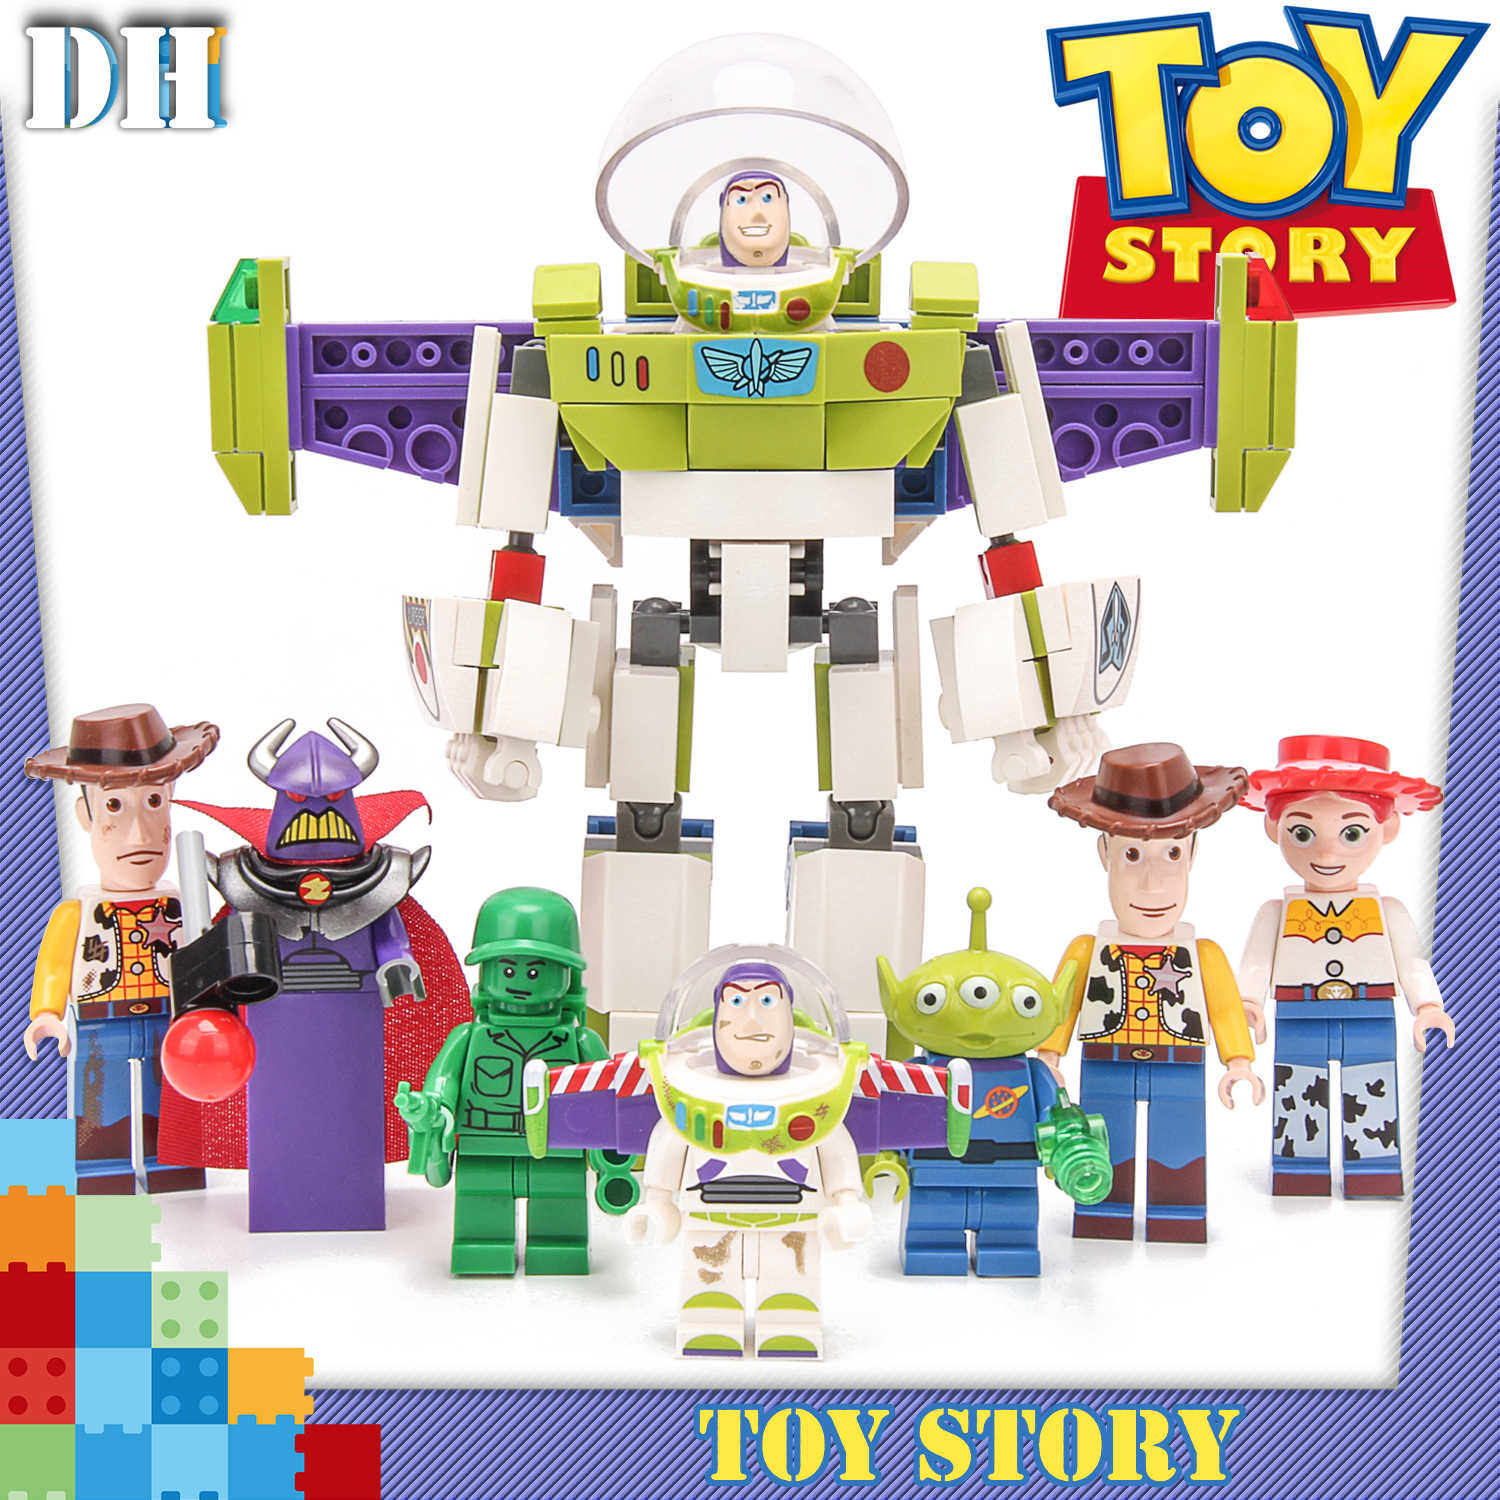 8 in1 Toy Story 4 ตัวเลข Gremlins Gizmo Woody Buzz Lightyear Jessie Andy Super Mario Building บล็อกเพื่อนของเล่น